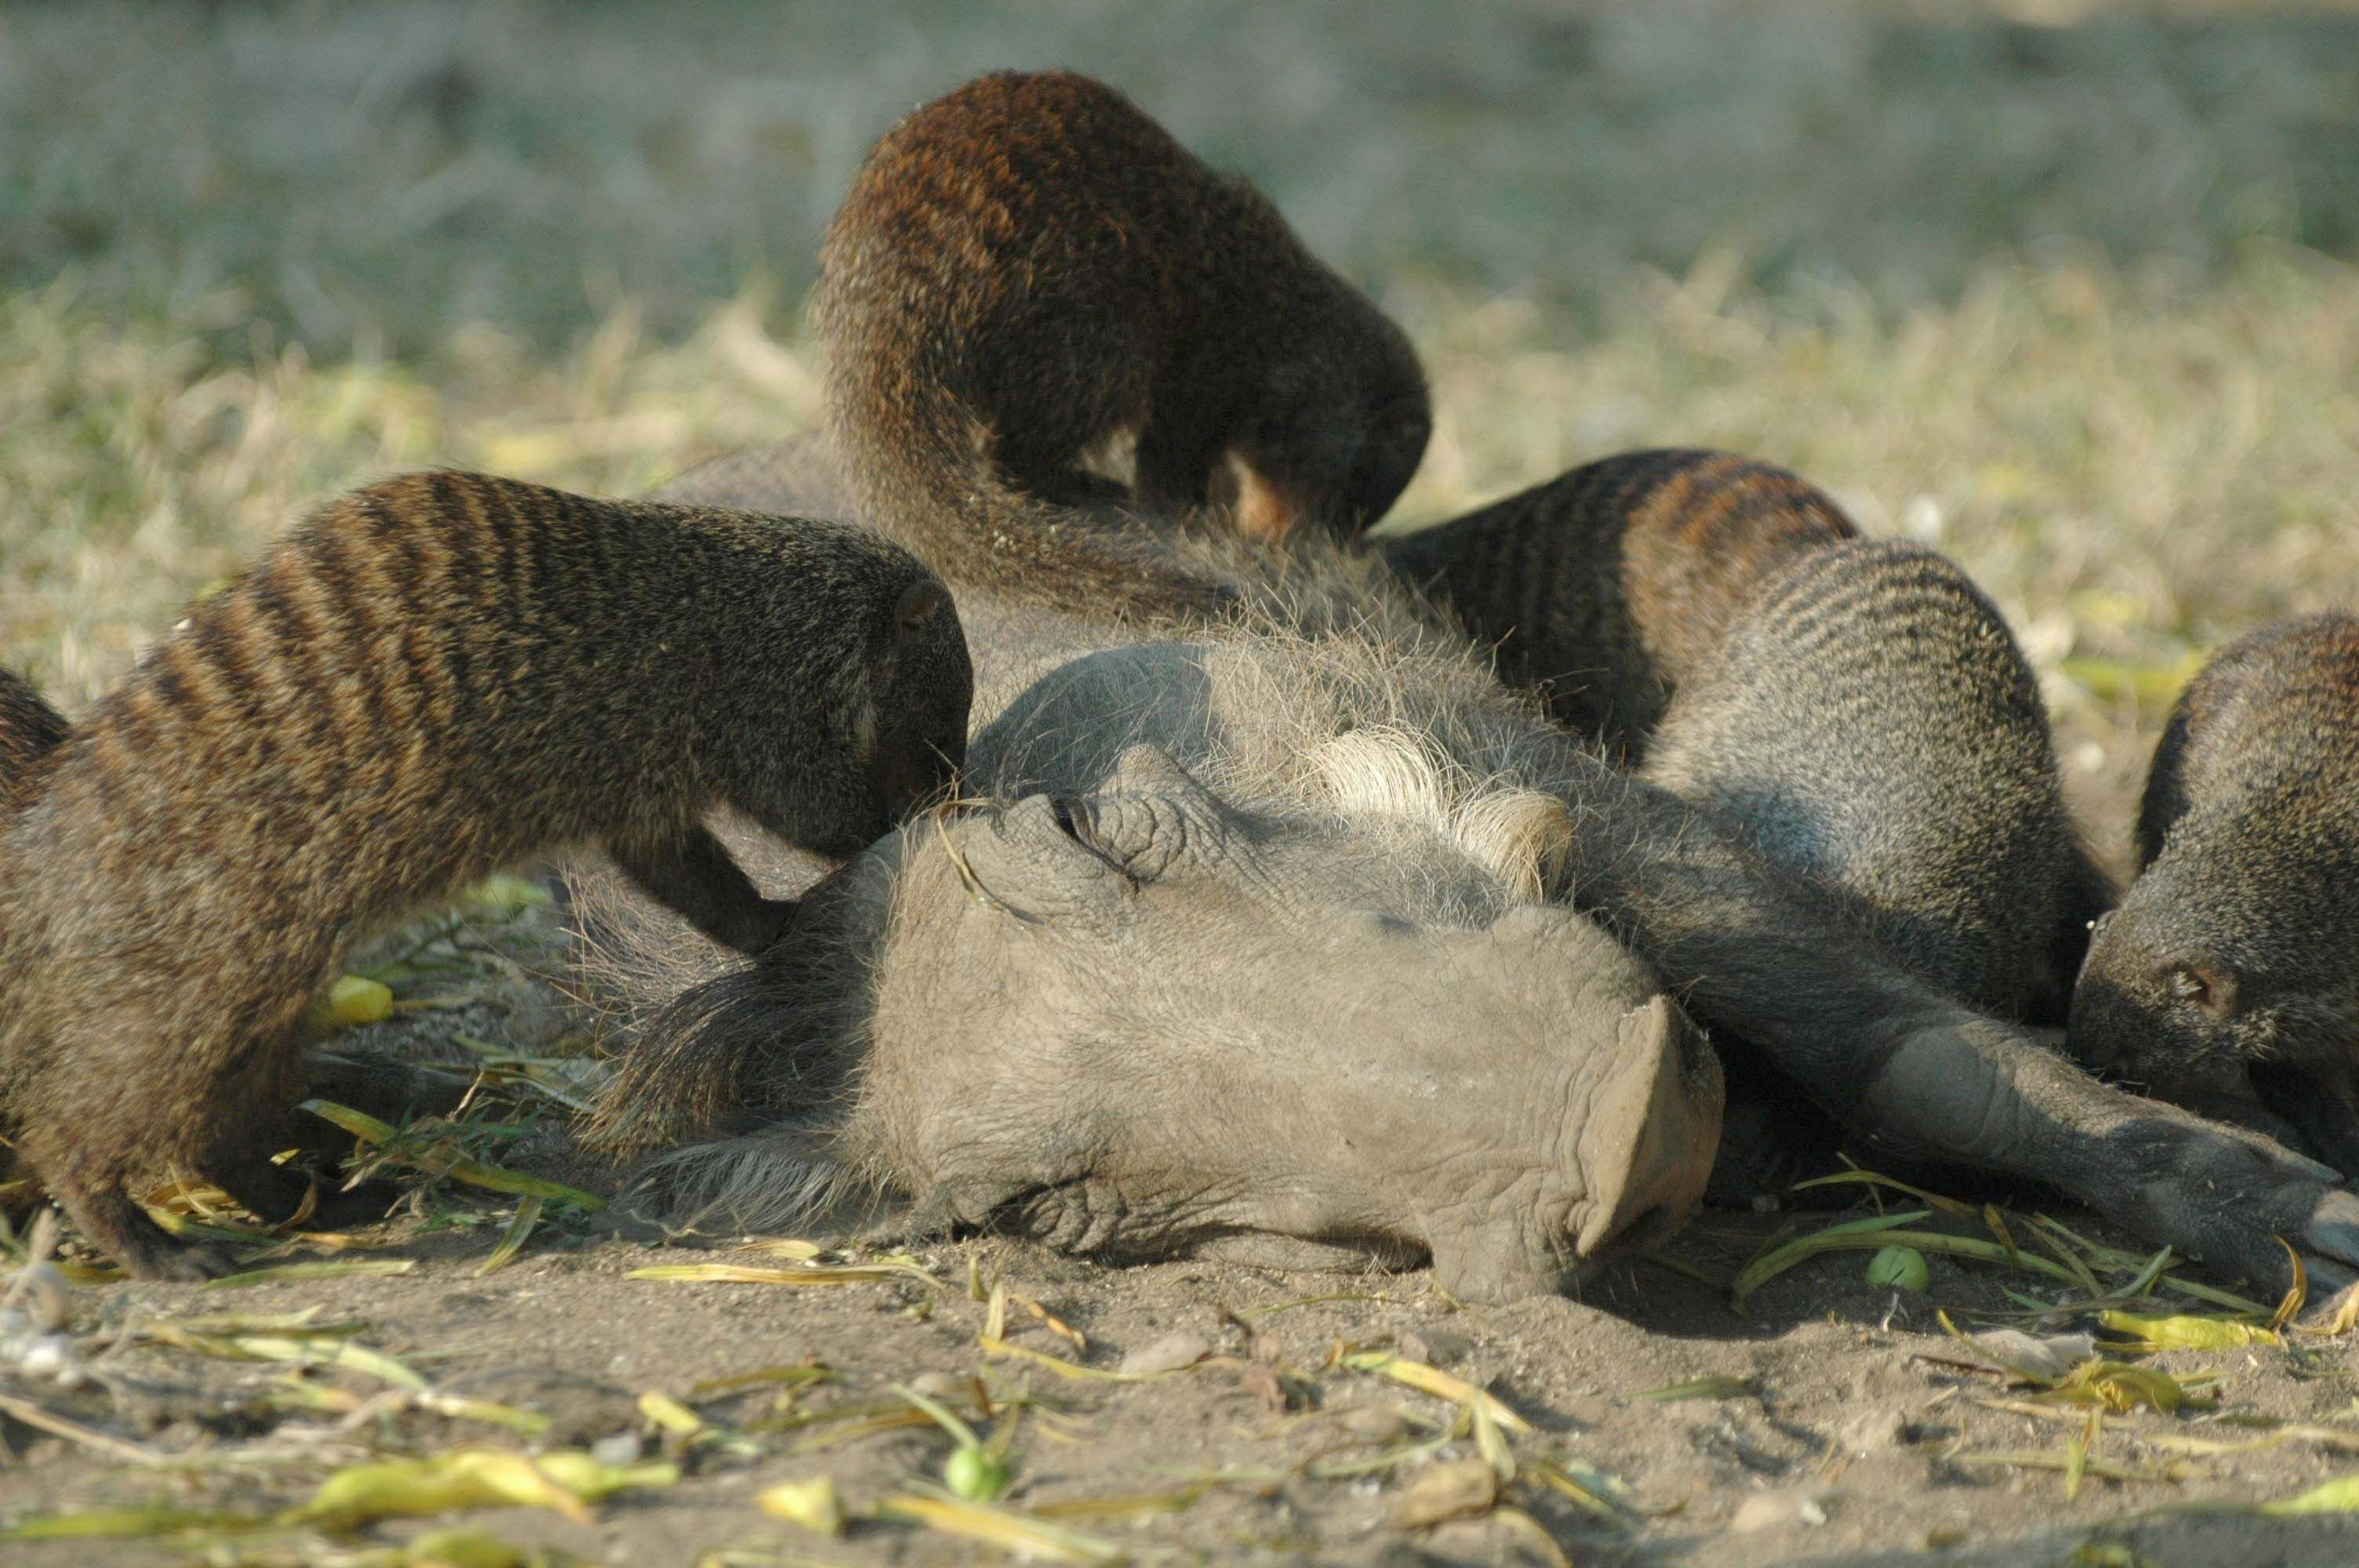 Cooperation Between Mammal Species Maybe Not So Rare